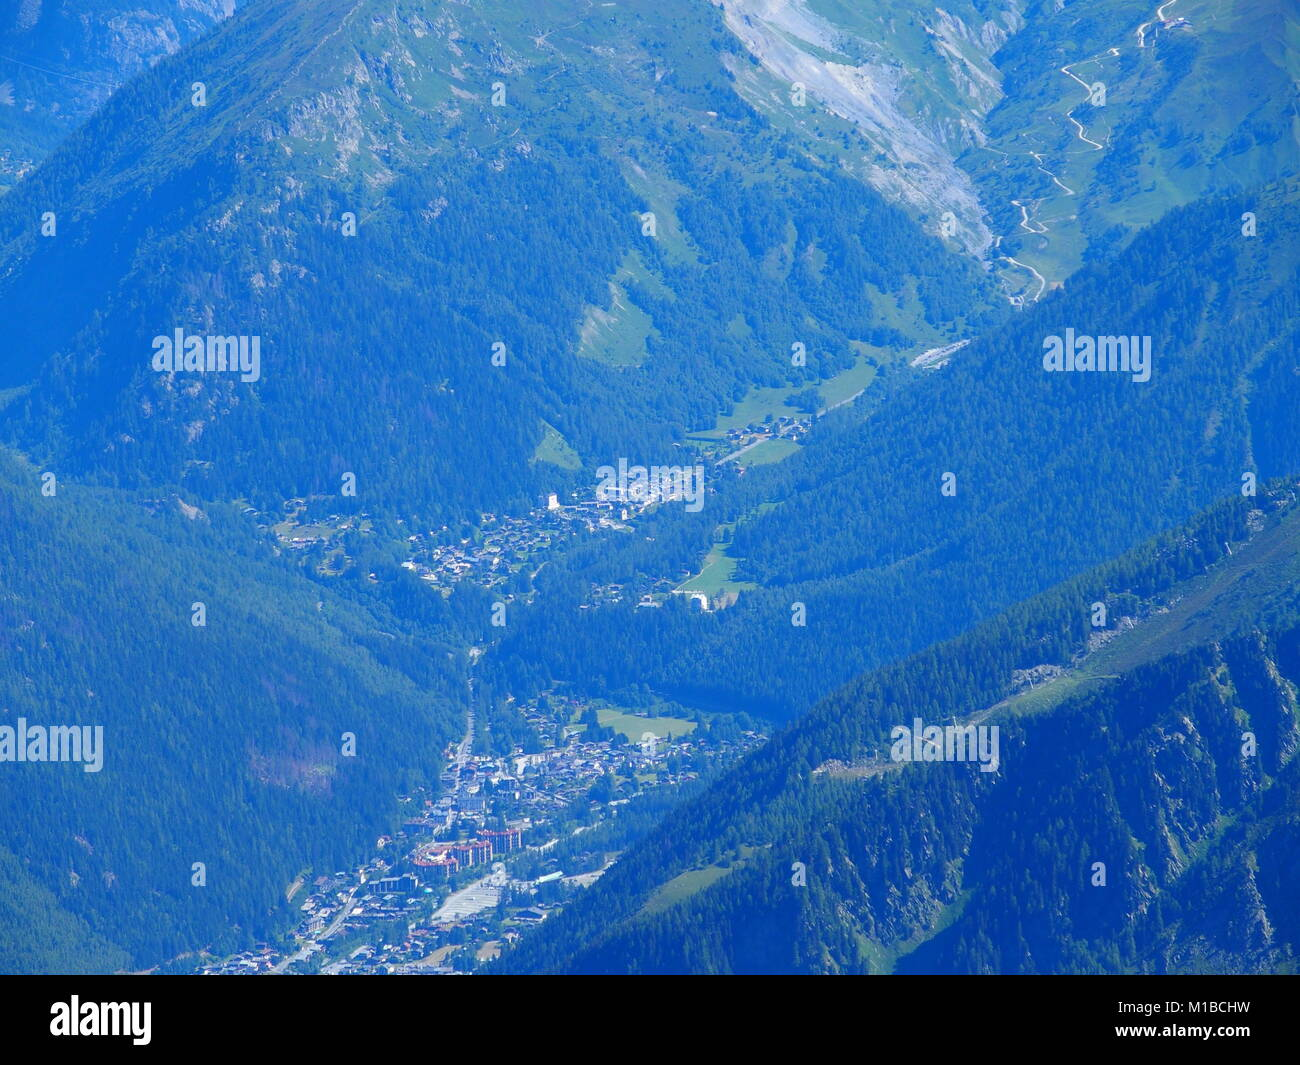 CHAMONIX MONT BLANC village in valley seen from AIGUILLE du MIDI peak at french Alps - Stock Image